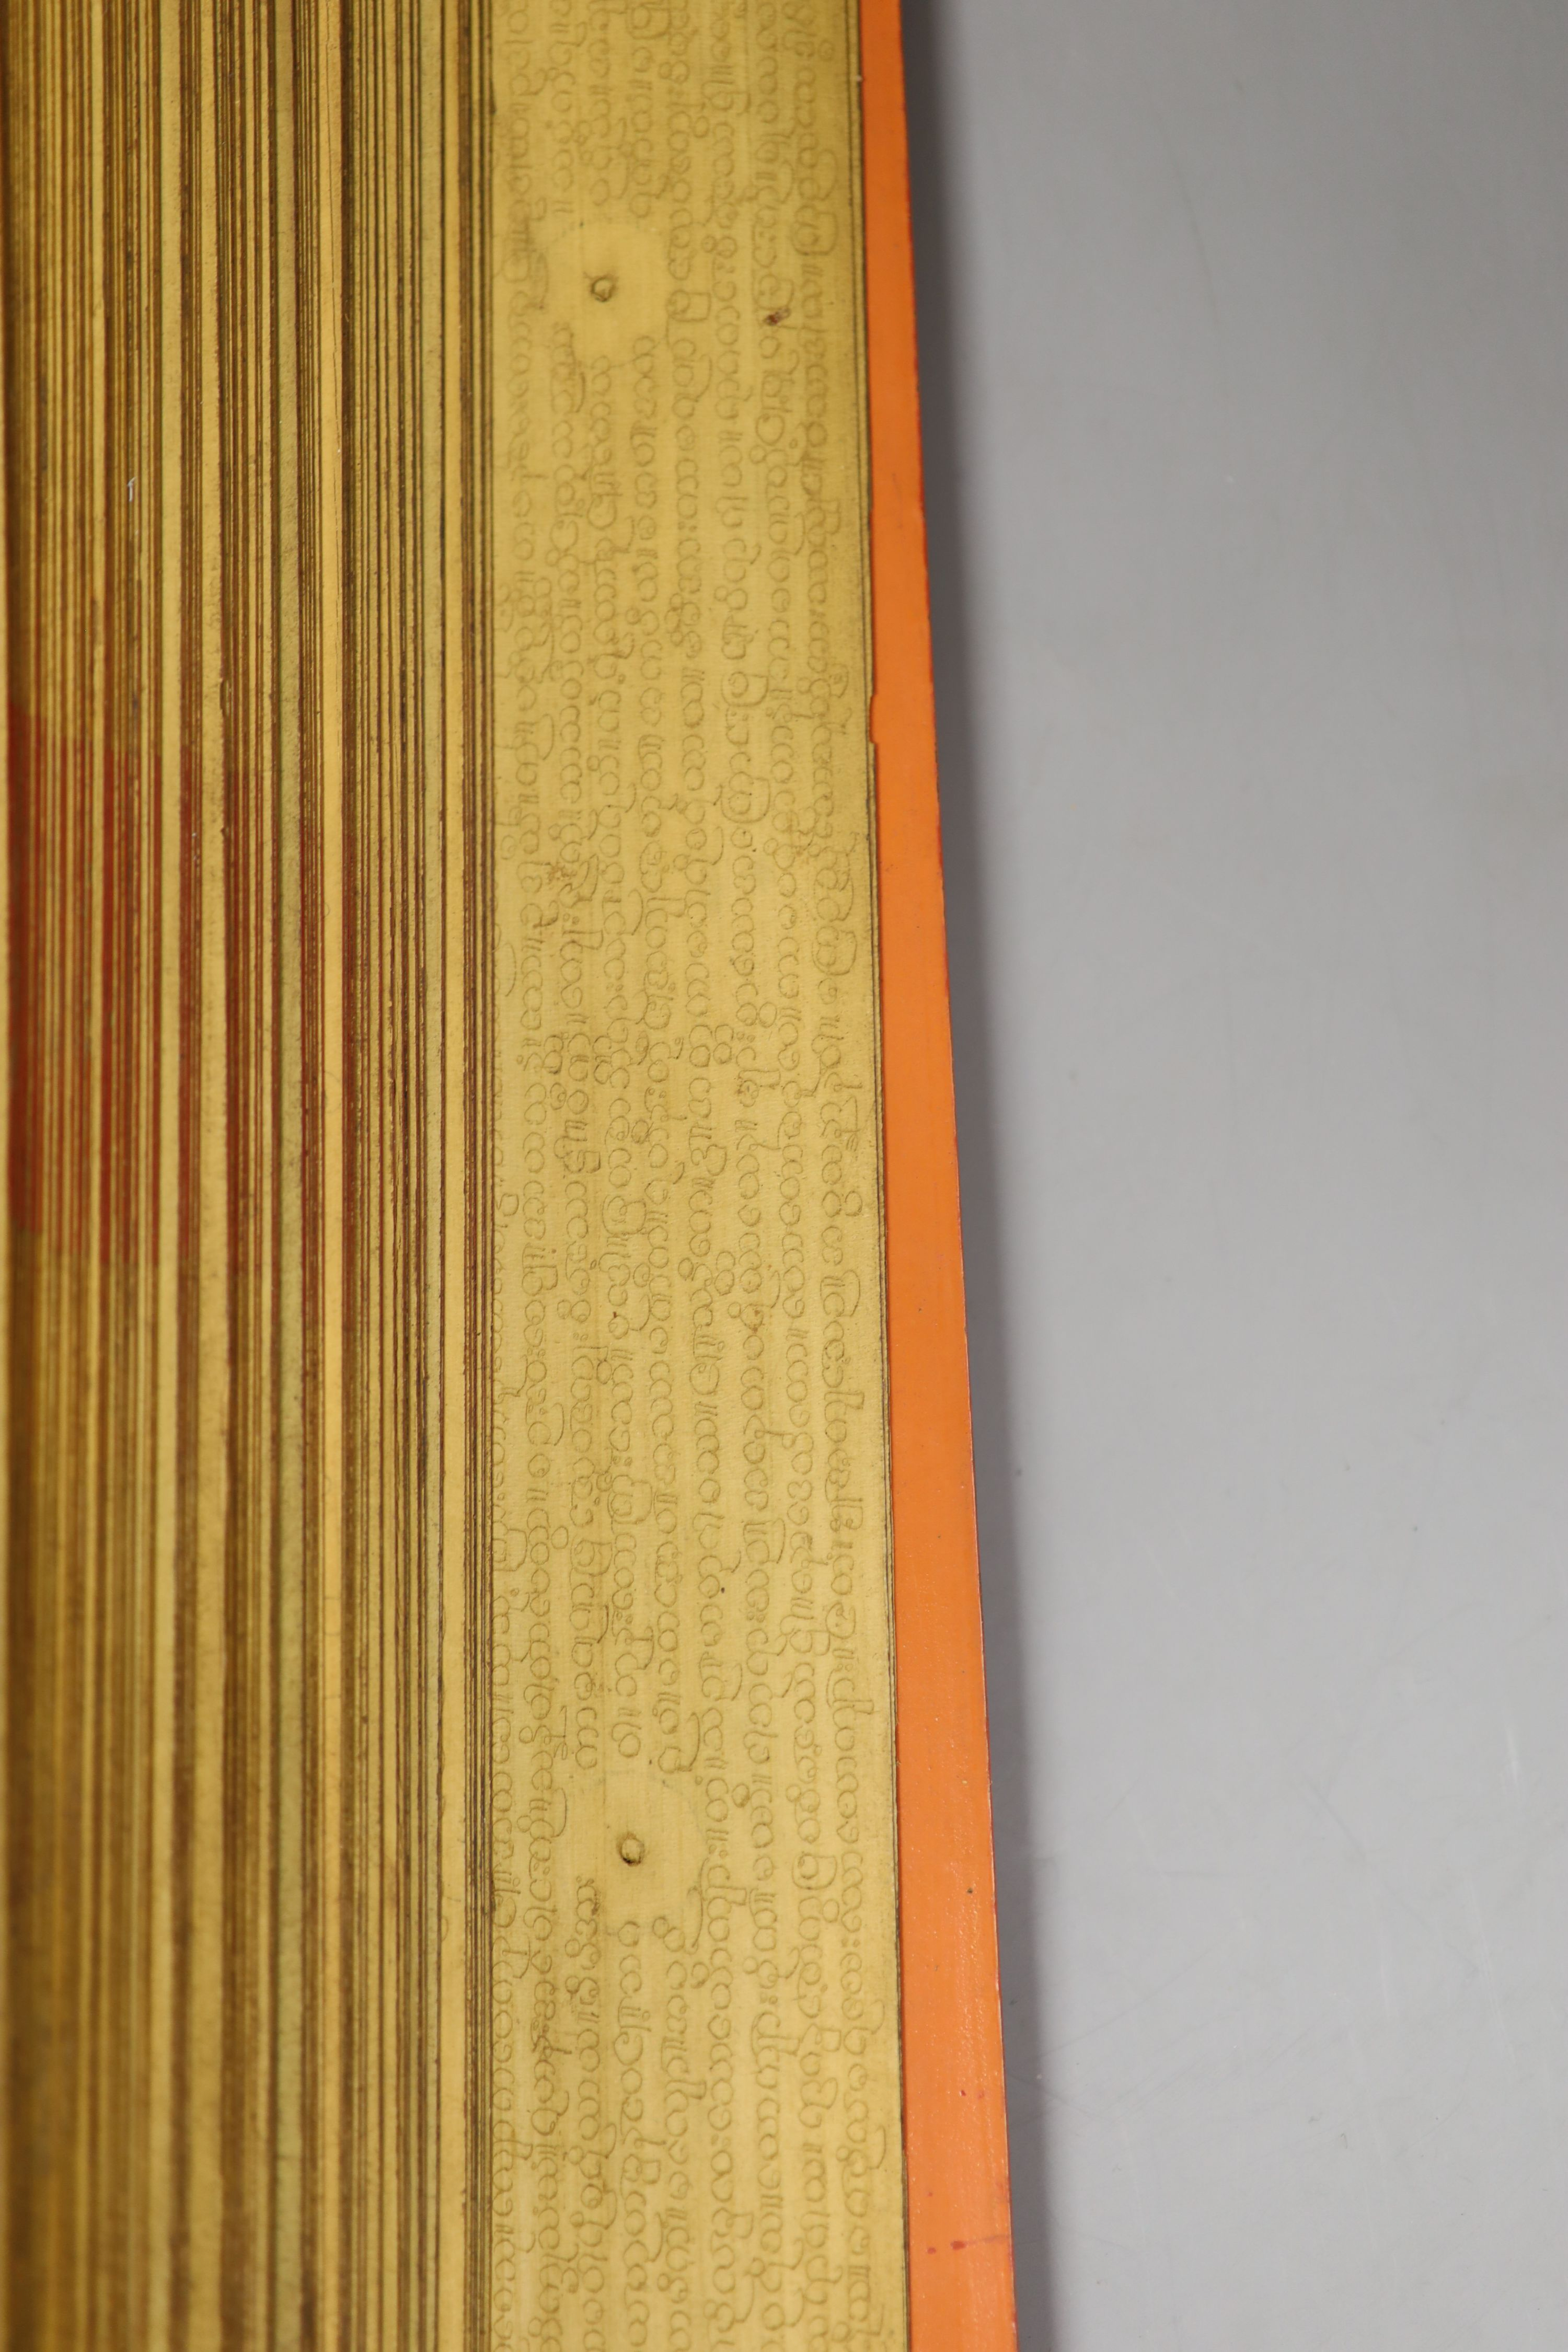 Three 19th century Burmese lacquered Sutra manuscripts, each written in Pali on bamboo leaves, gold - Image 4 of 5